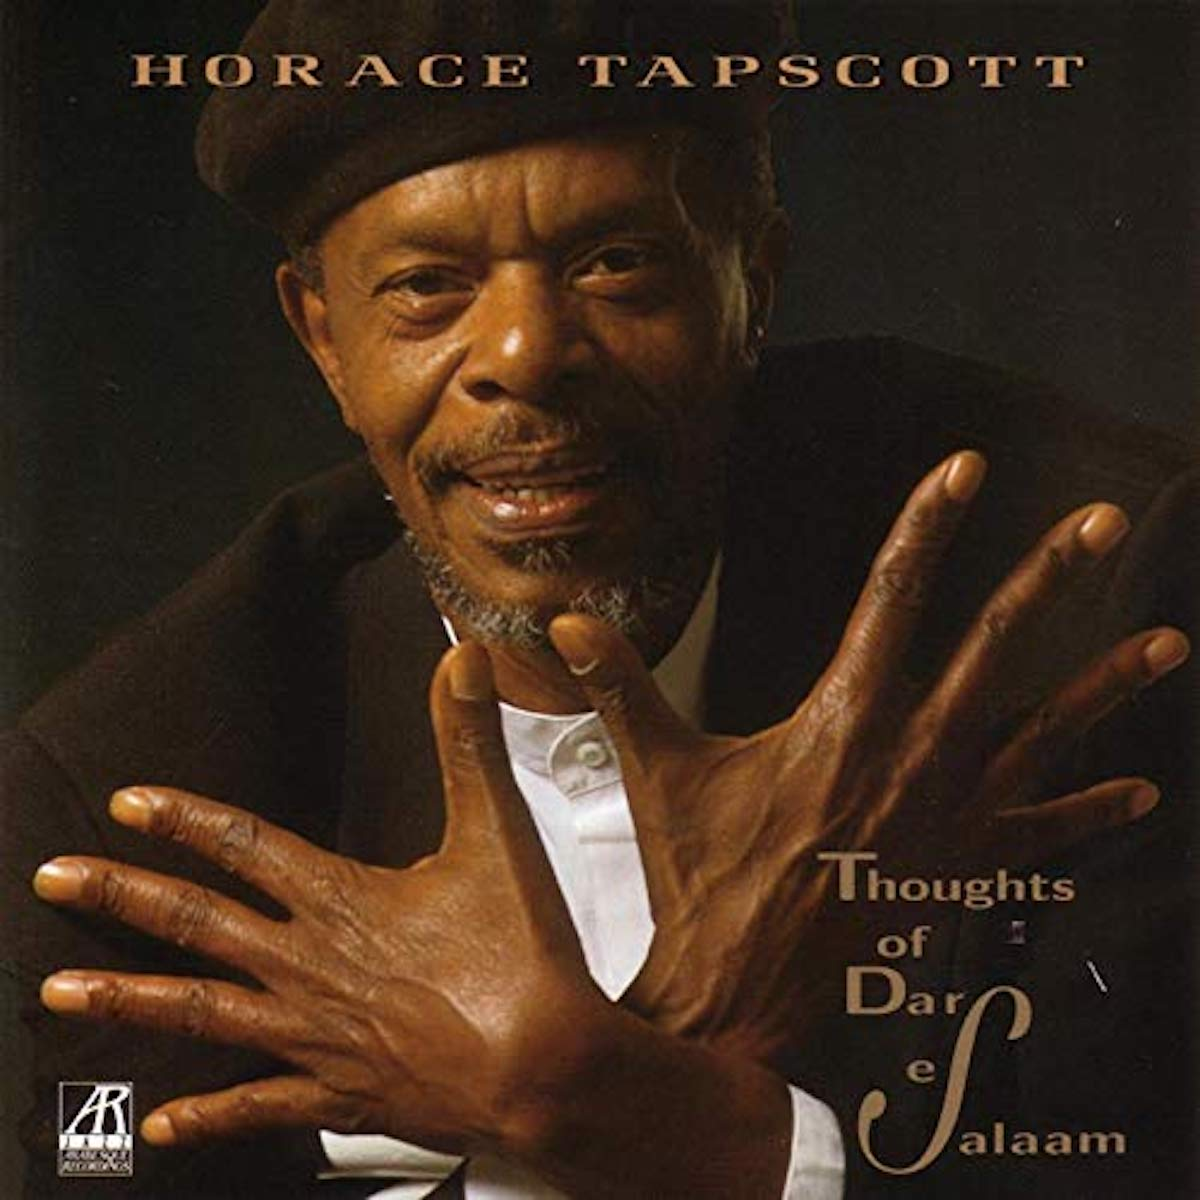 AJ0128 |  Thoughts of Dar Es Salaam  | Horace Tapscott